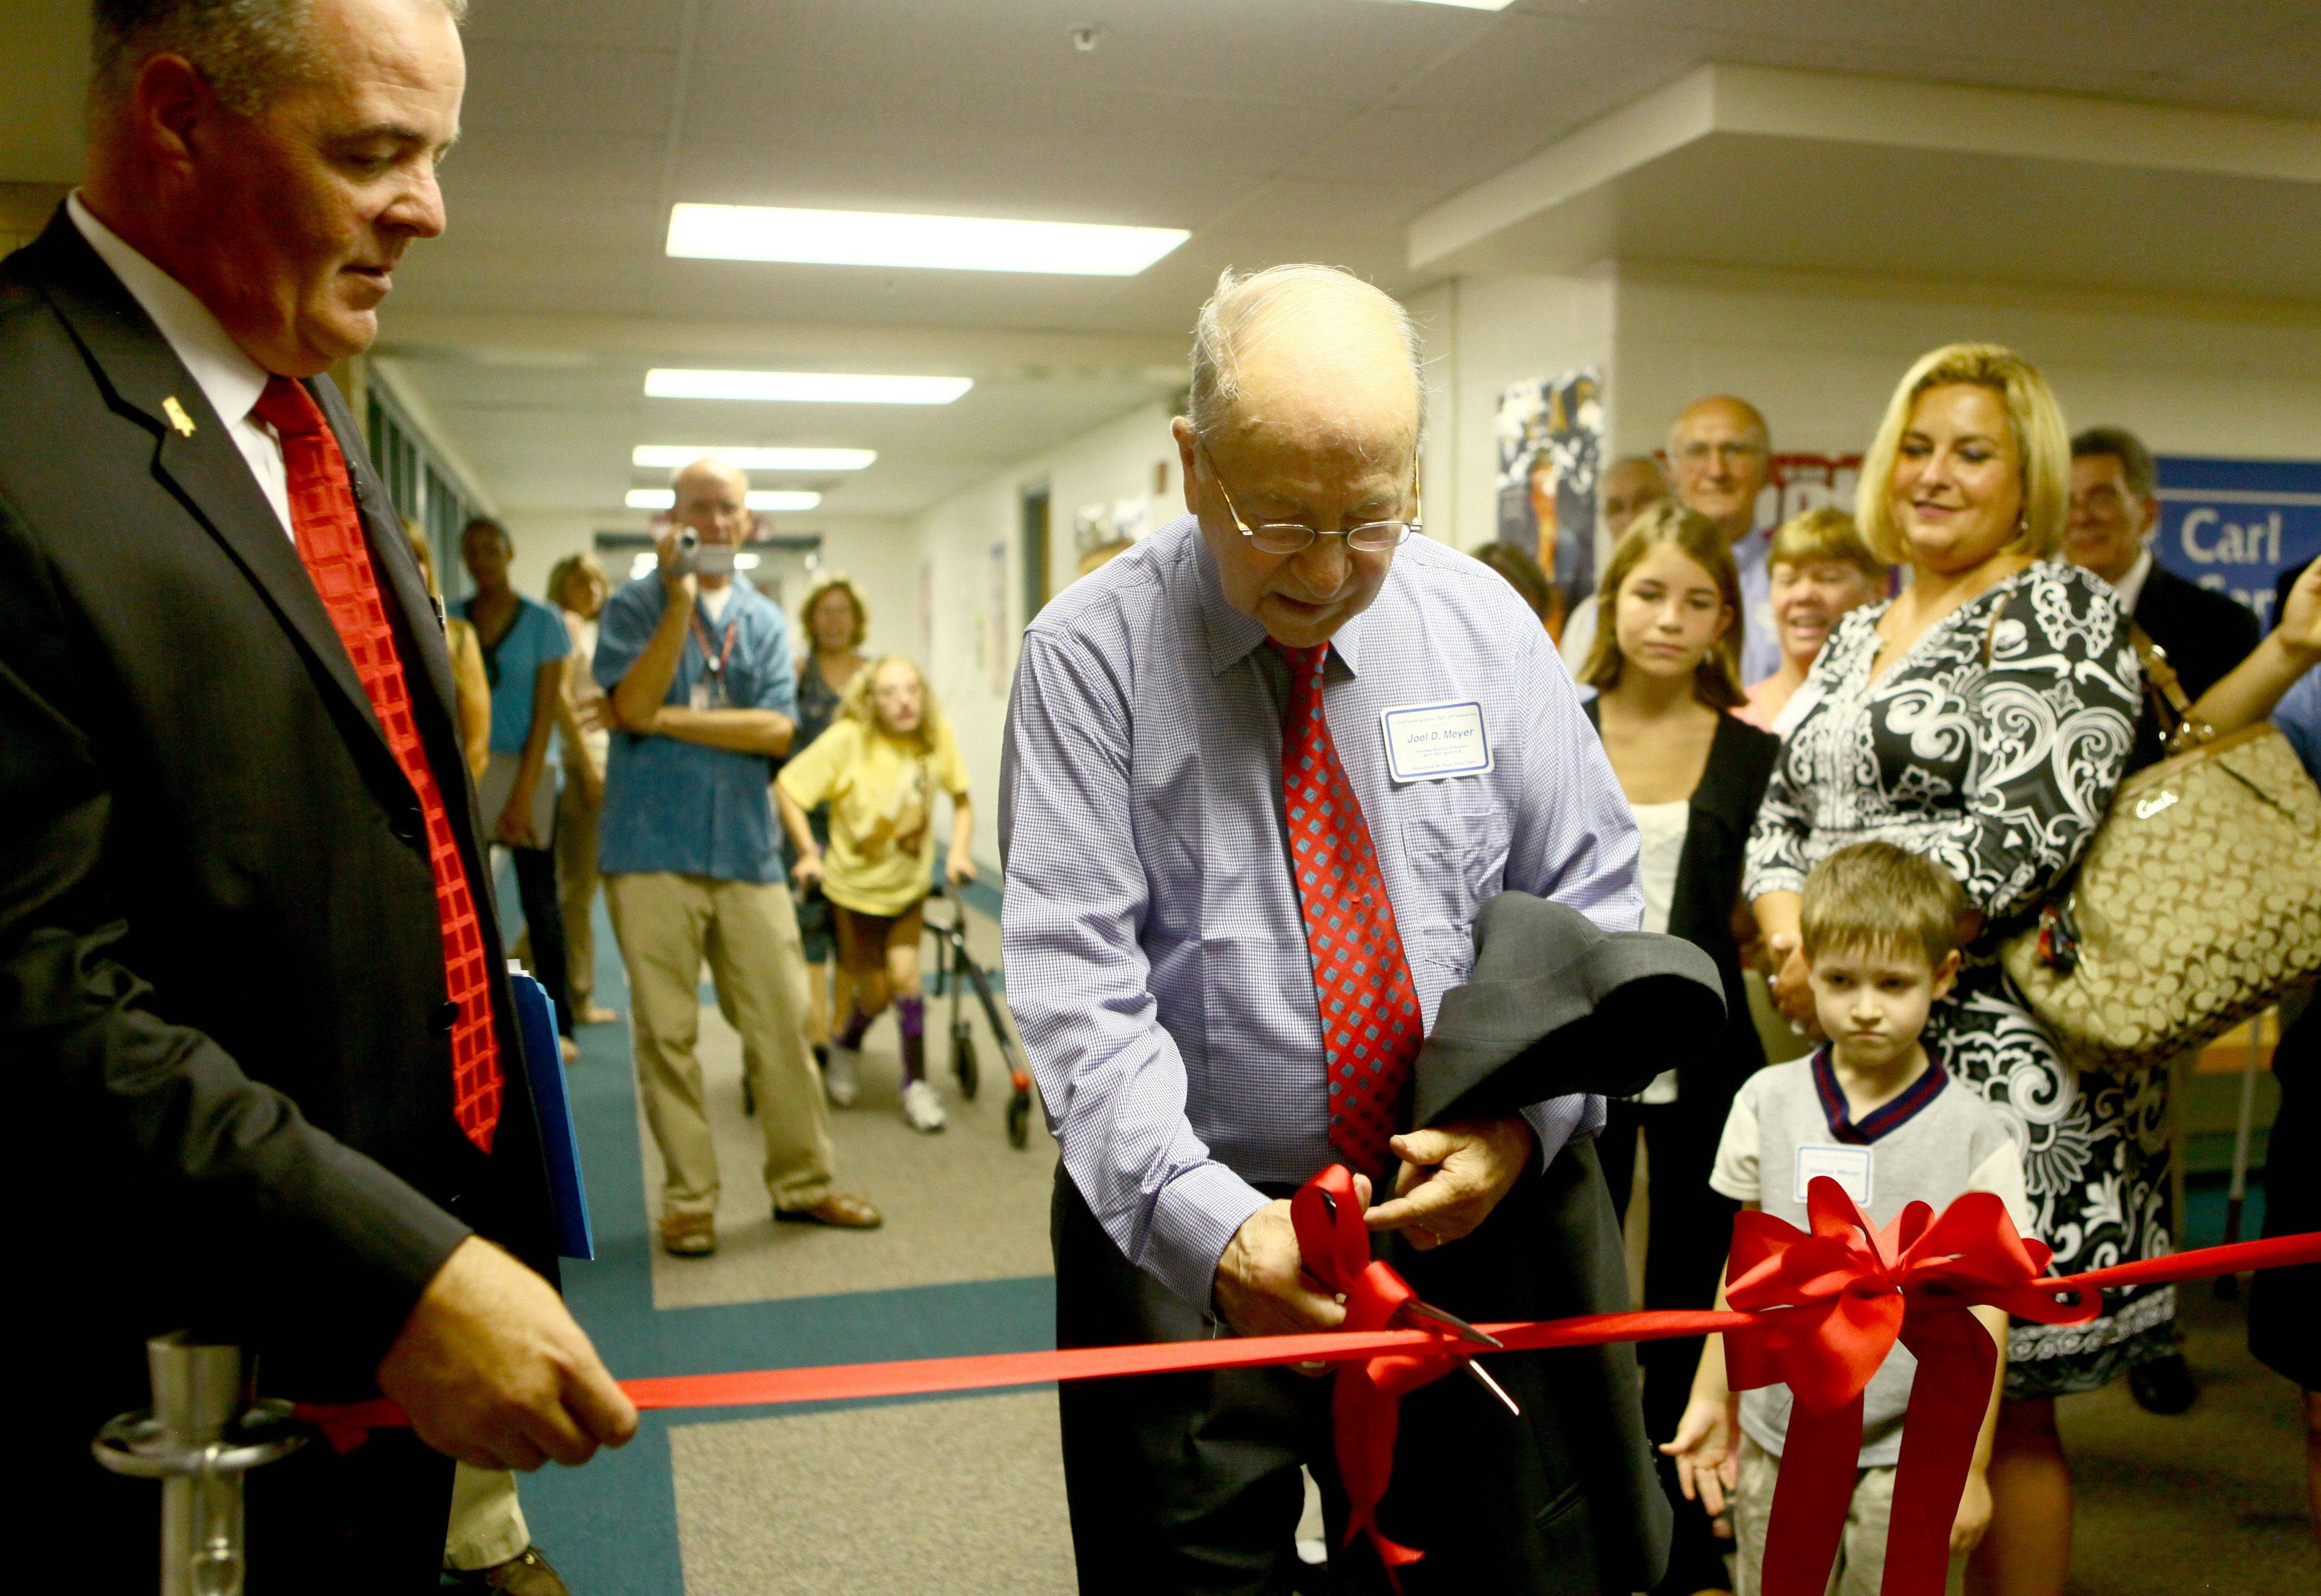 Scott Thompson, Palatine Township Elementary District 15 superintendent, helps Joel Meyer cut the ribbon to officially open the new media center named in his honor at Carl Sandburg Junior High in Rolling Meadows.